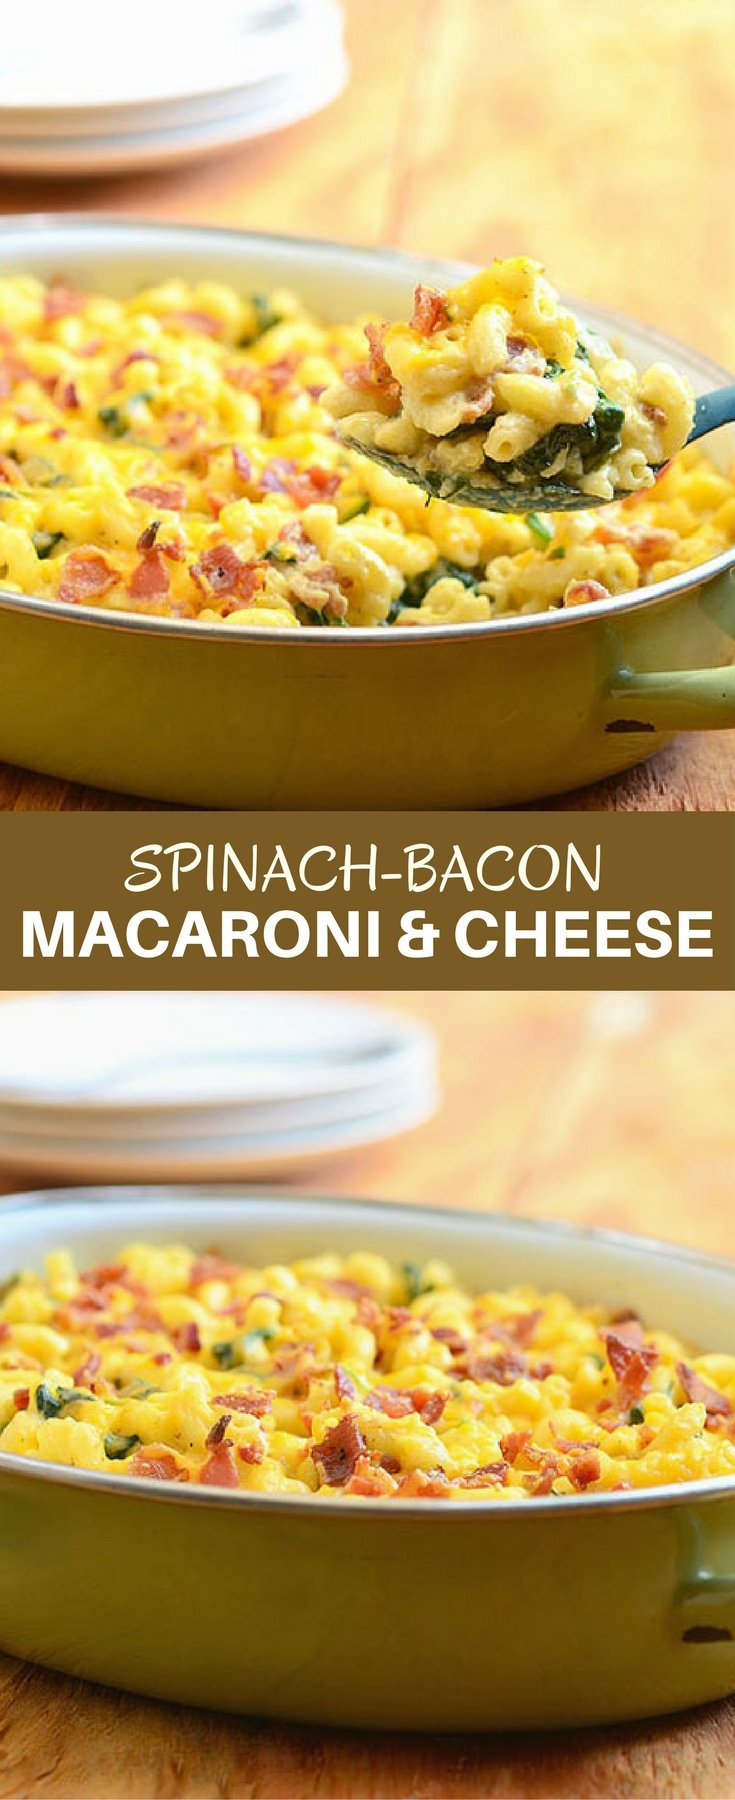 Spinach-Bacon Macaroni and Cheese is a grown-up take on a classic childhood favorite. Loaded with crisp bacon and spinach, it's hearty, delicious, and the ultimate comfort food!